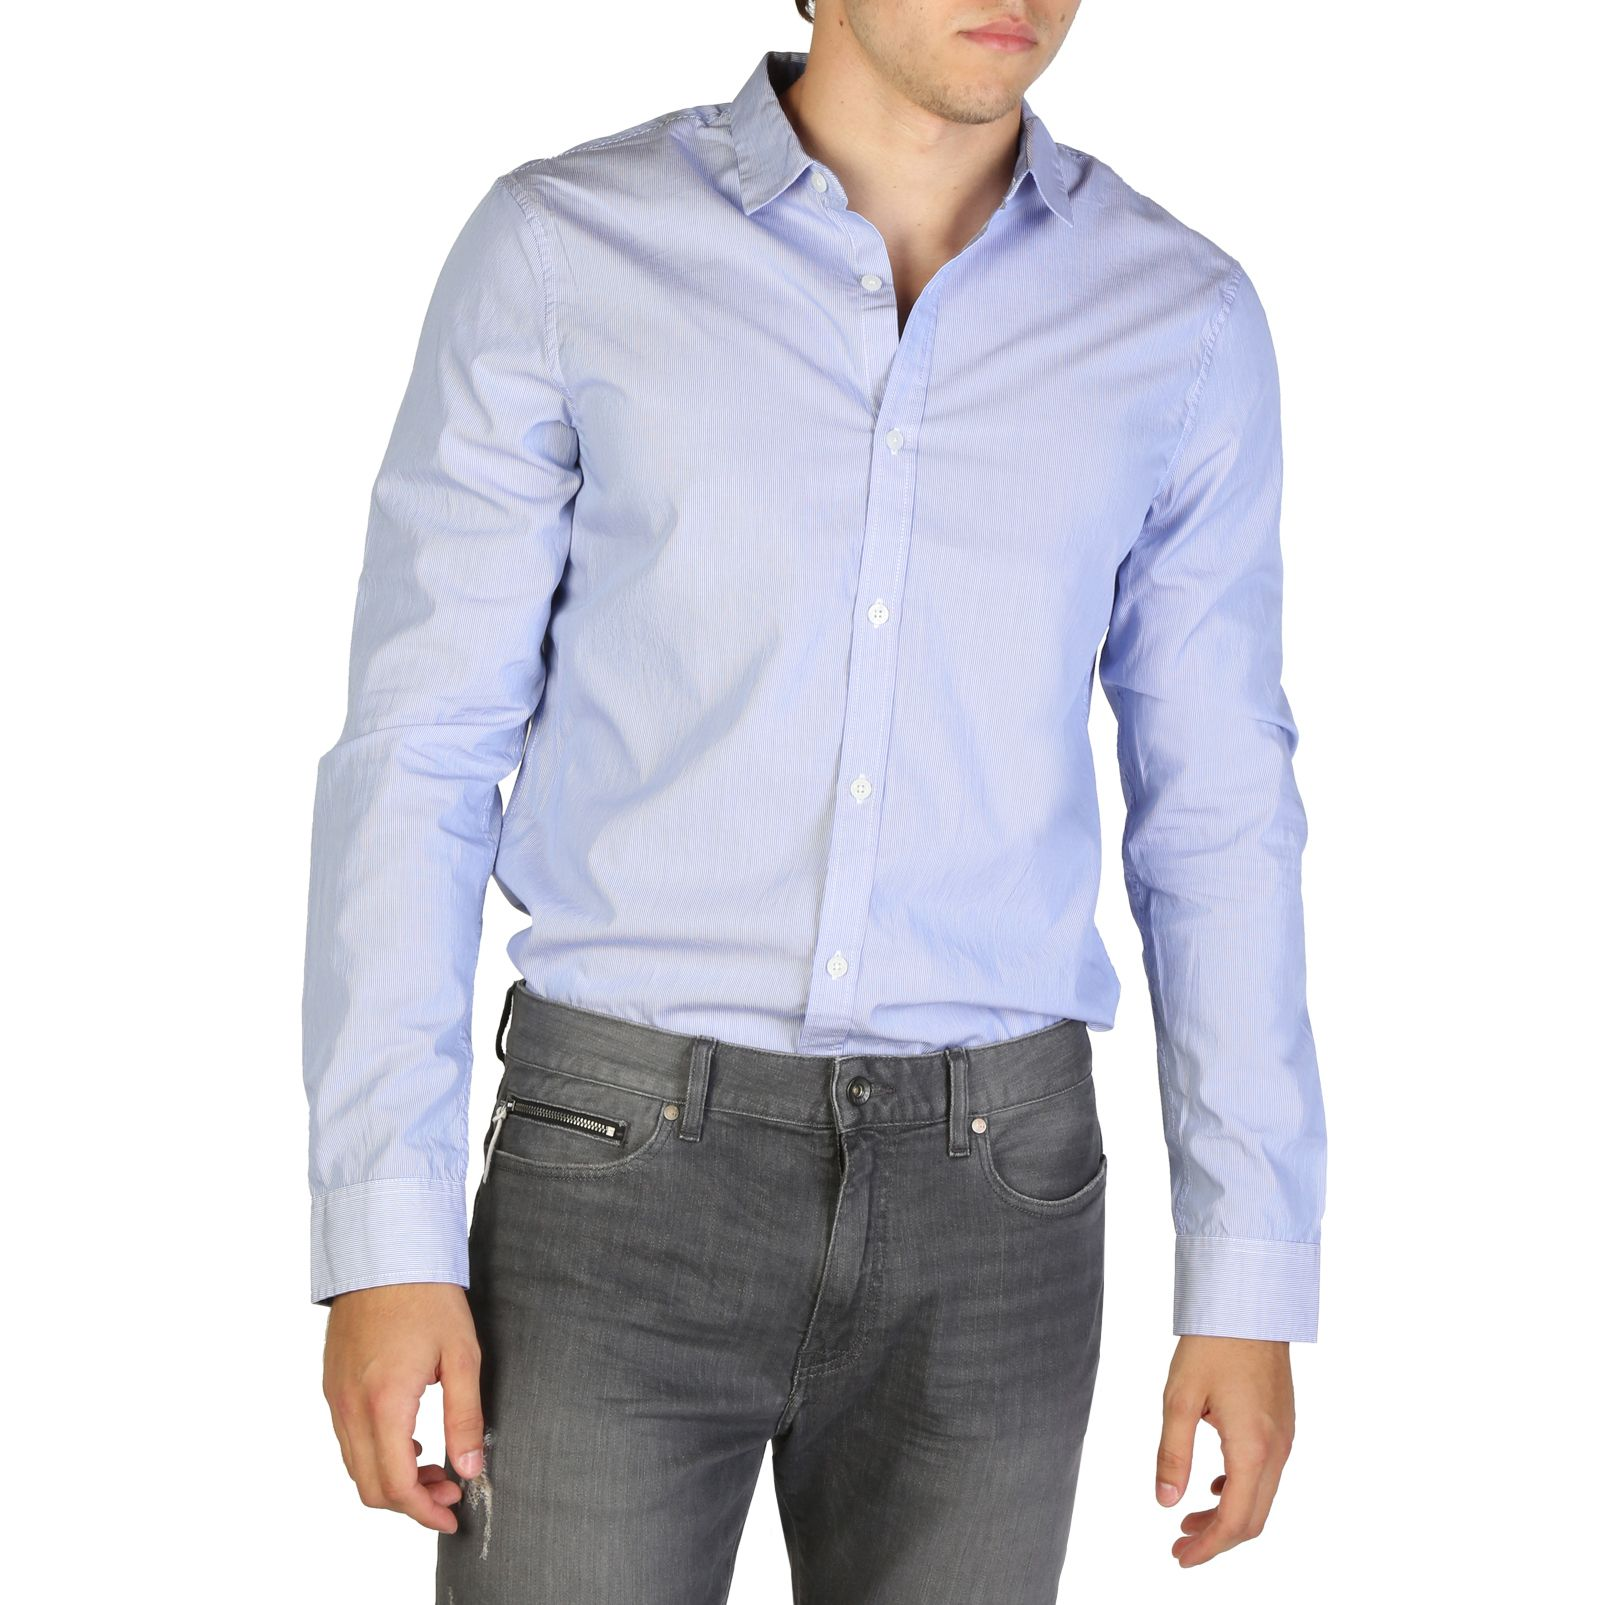 Armani Exchange Slim Fit Hemd - 8NZC61ZNAPZ - Blau